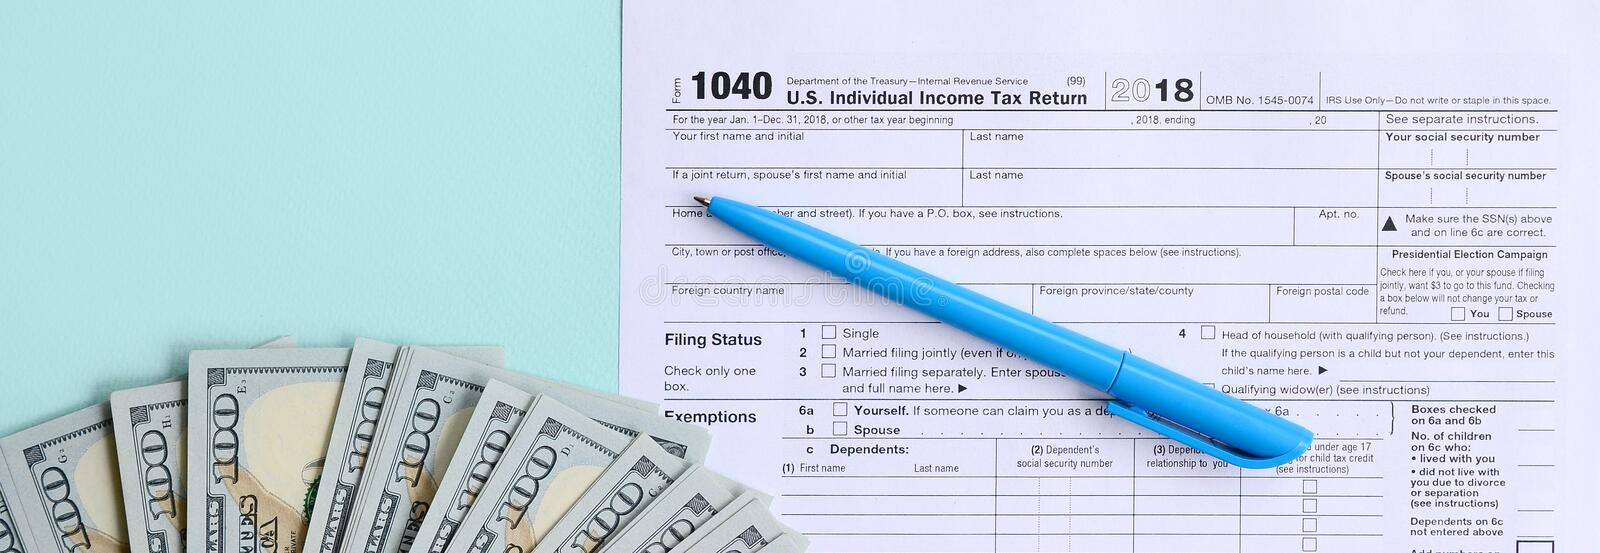 1040 tax form lies near hundred dollar bills and blue pen on a light blue background. US Individual income tax return stock image